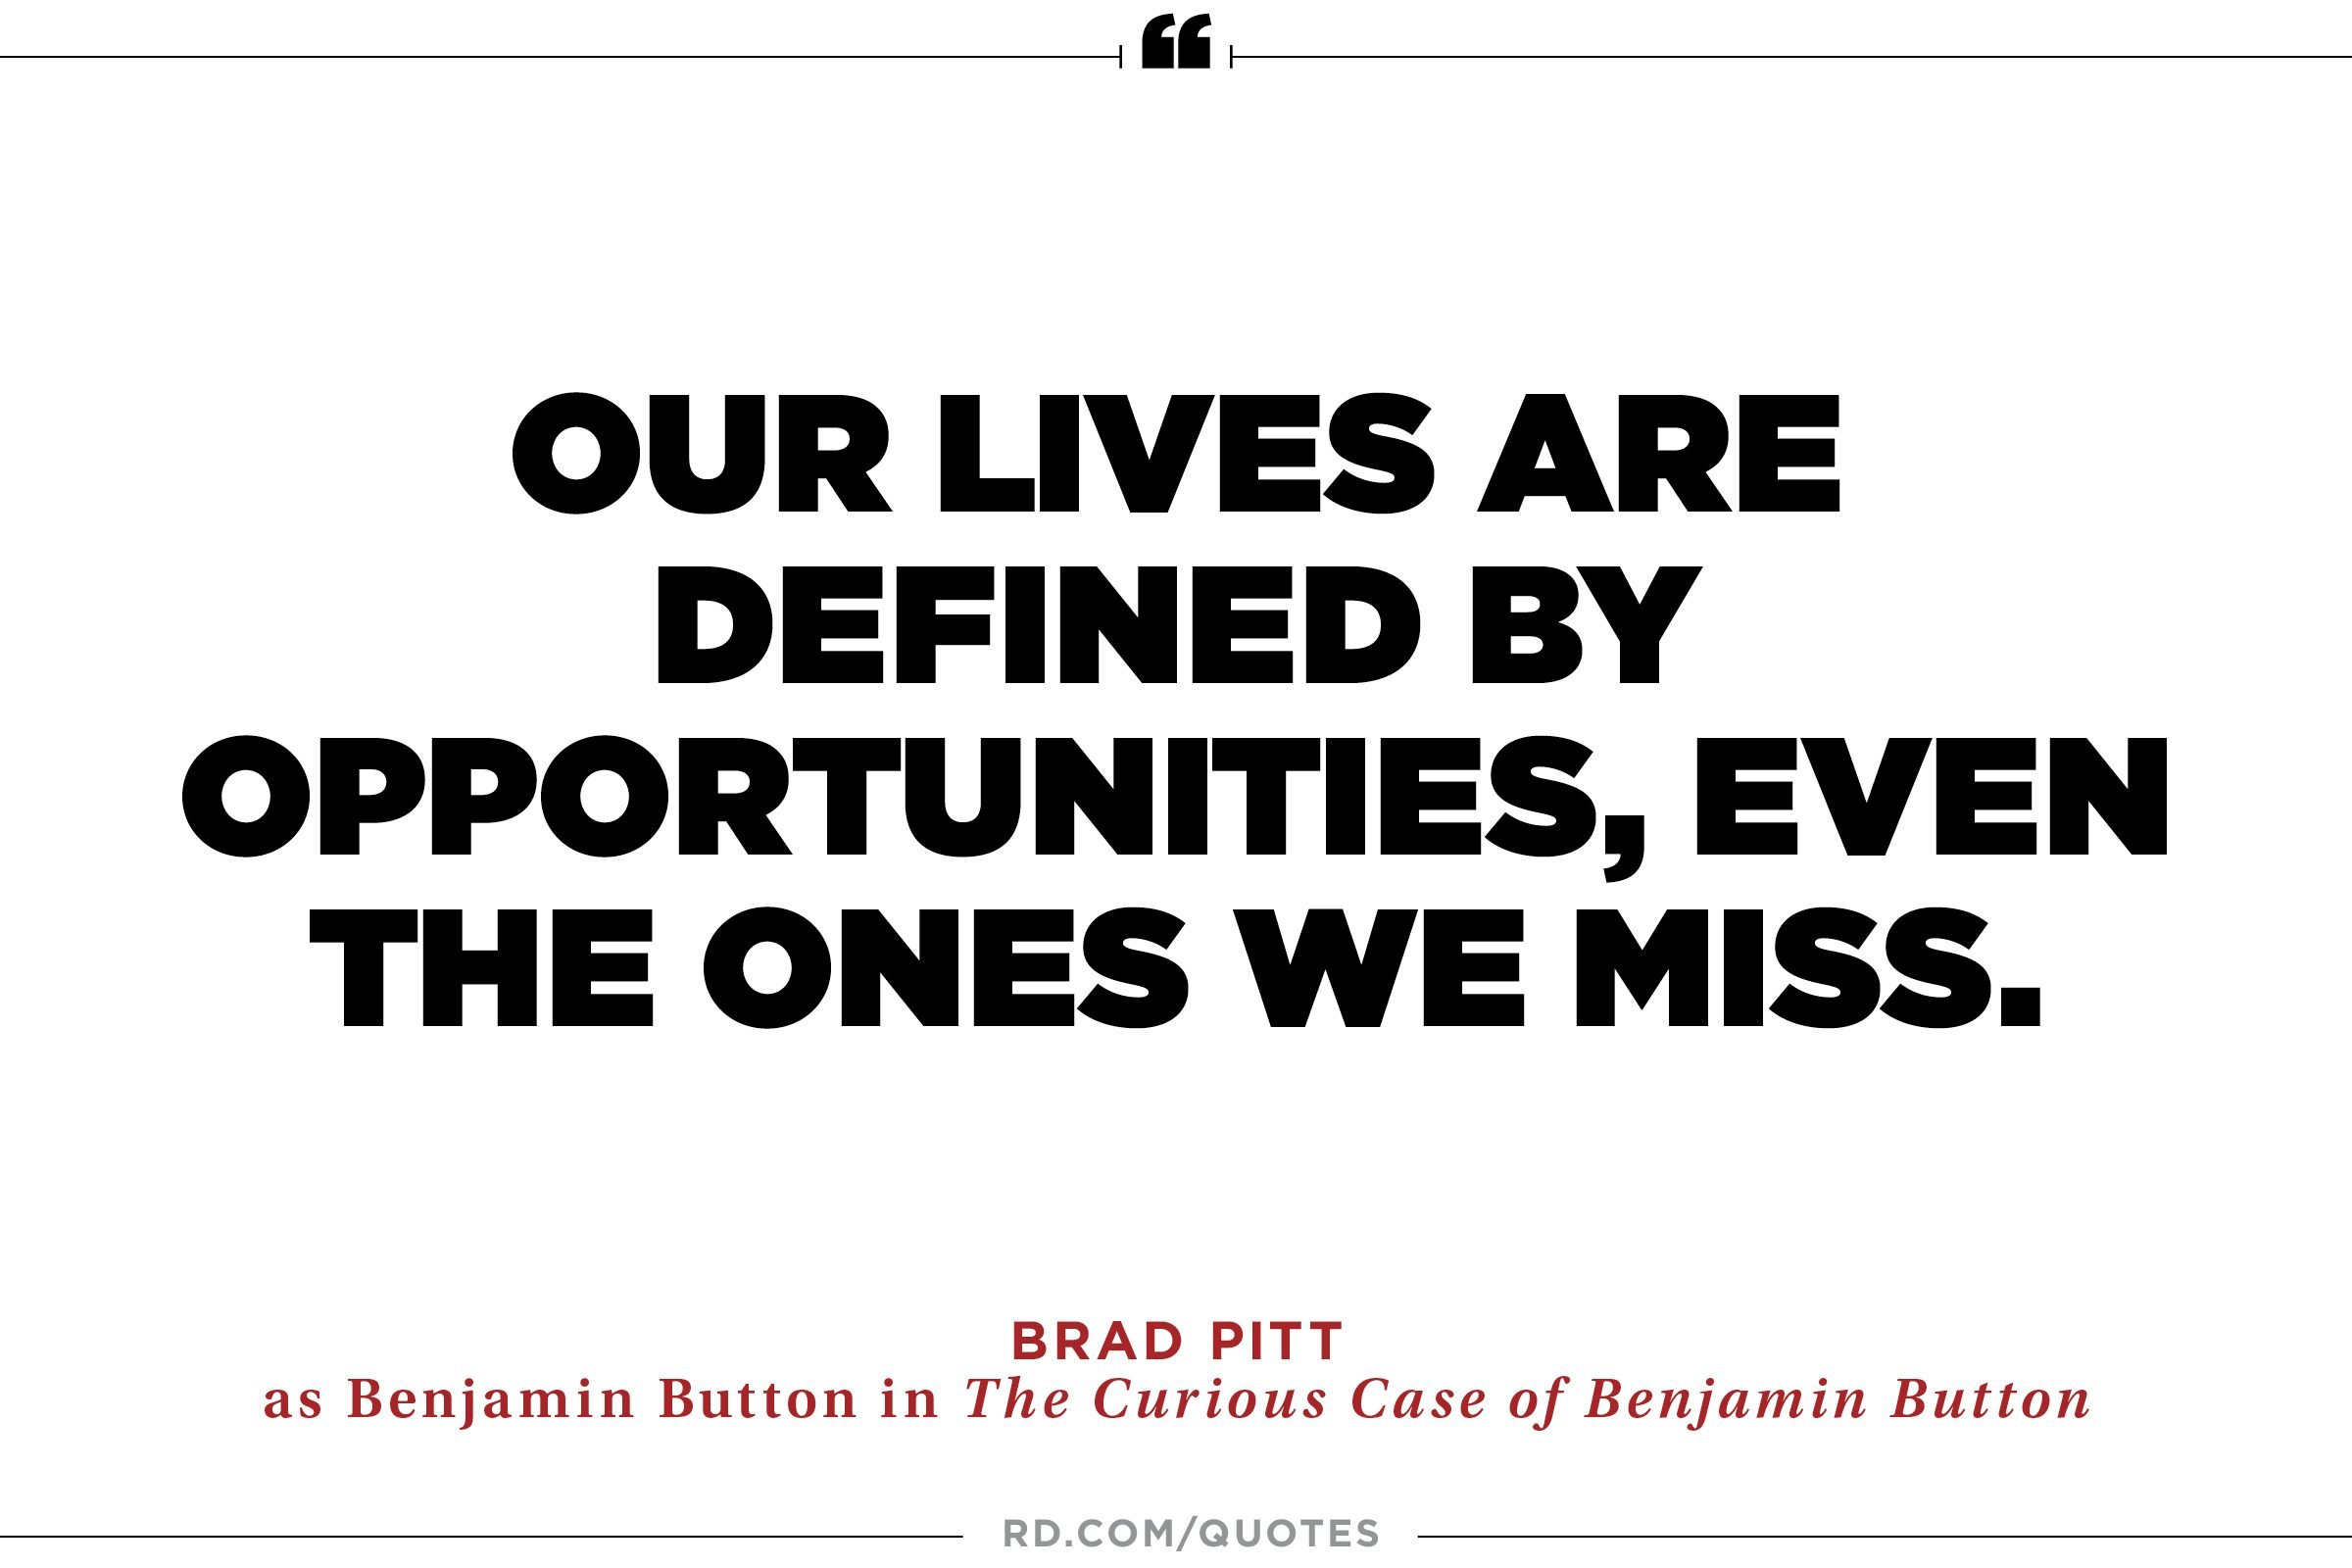 Our lives are defined by opportunities,